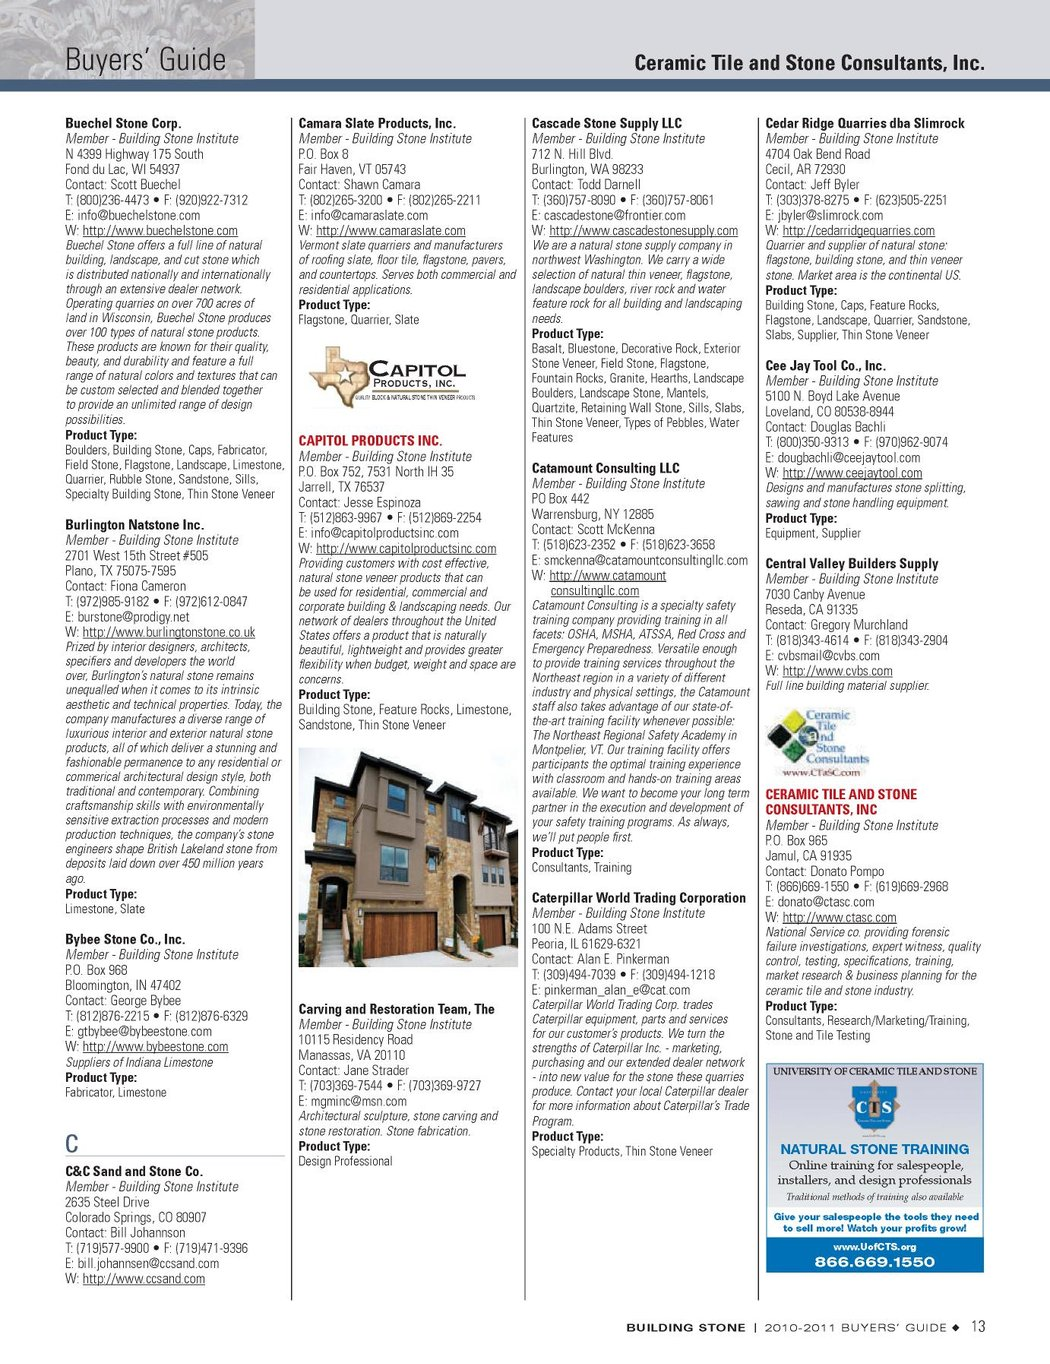 Building Stone Buyers Guide 2010